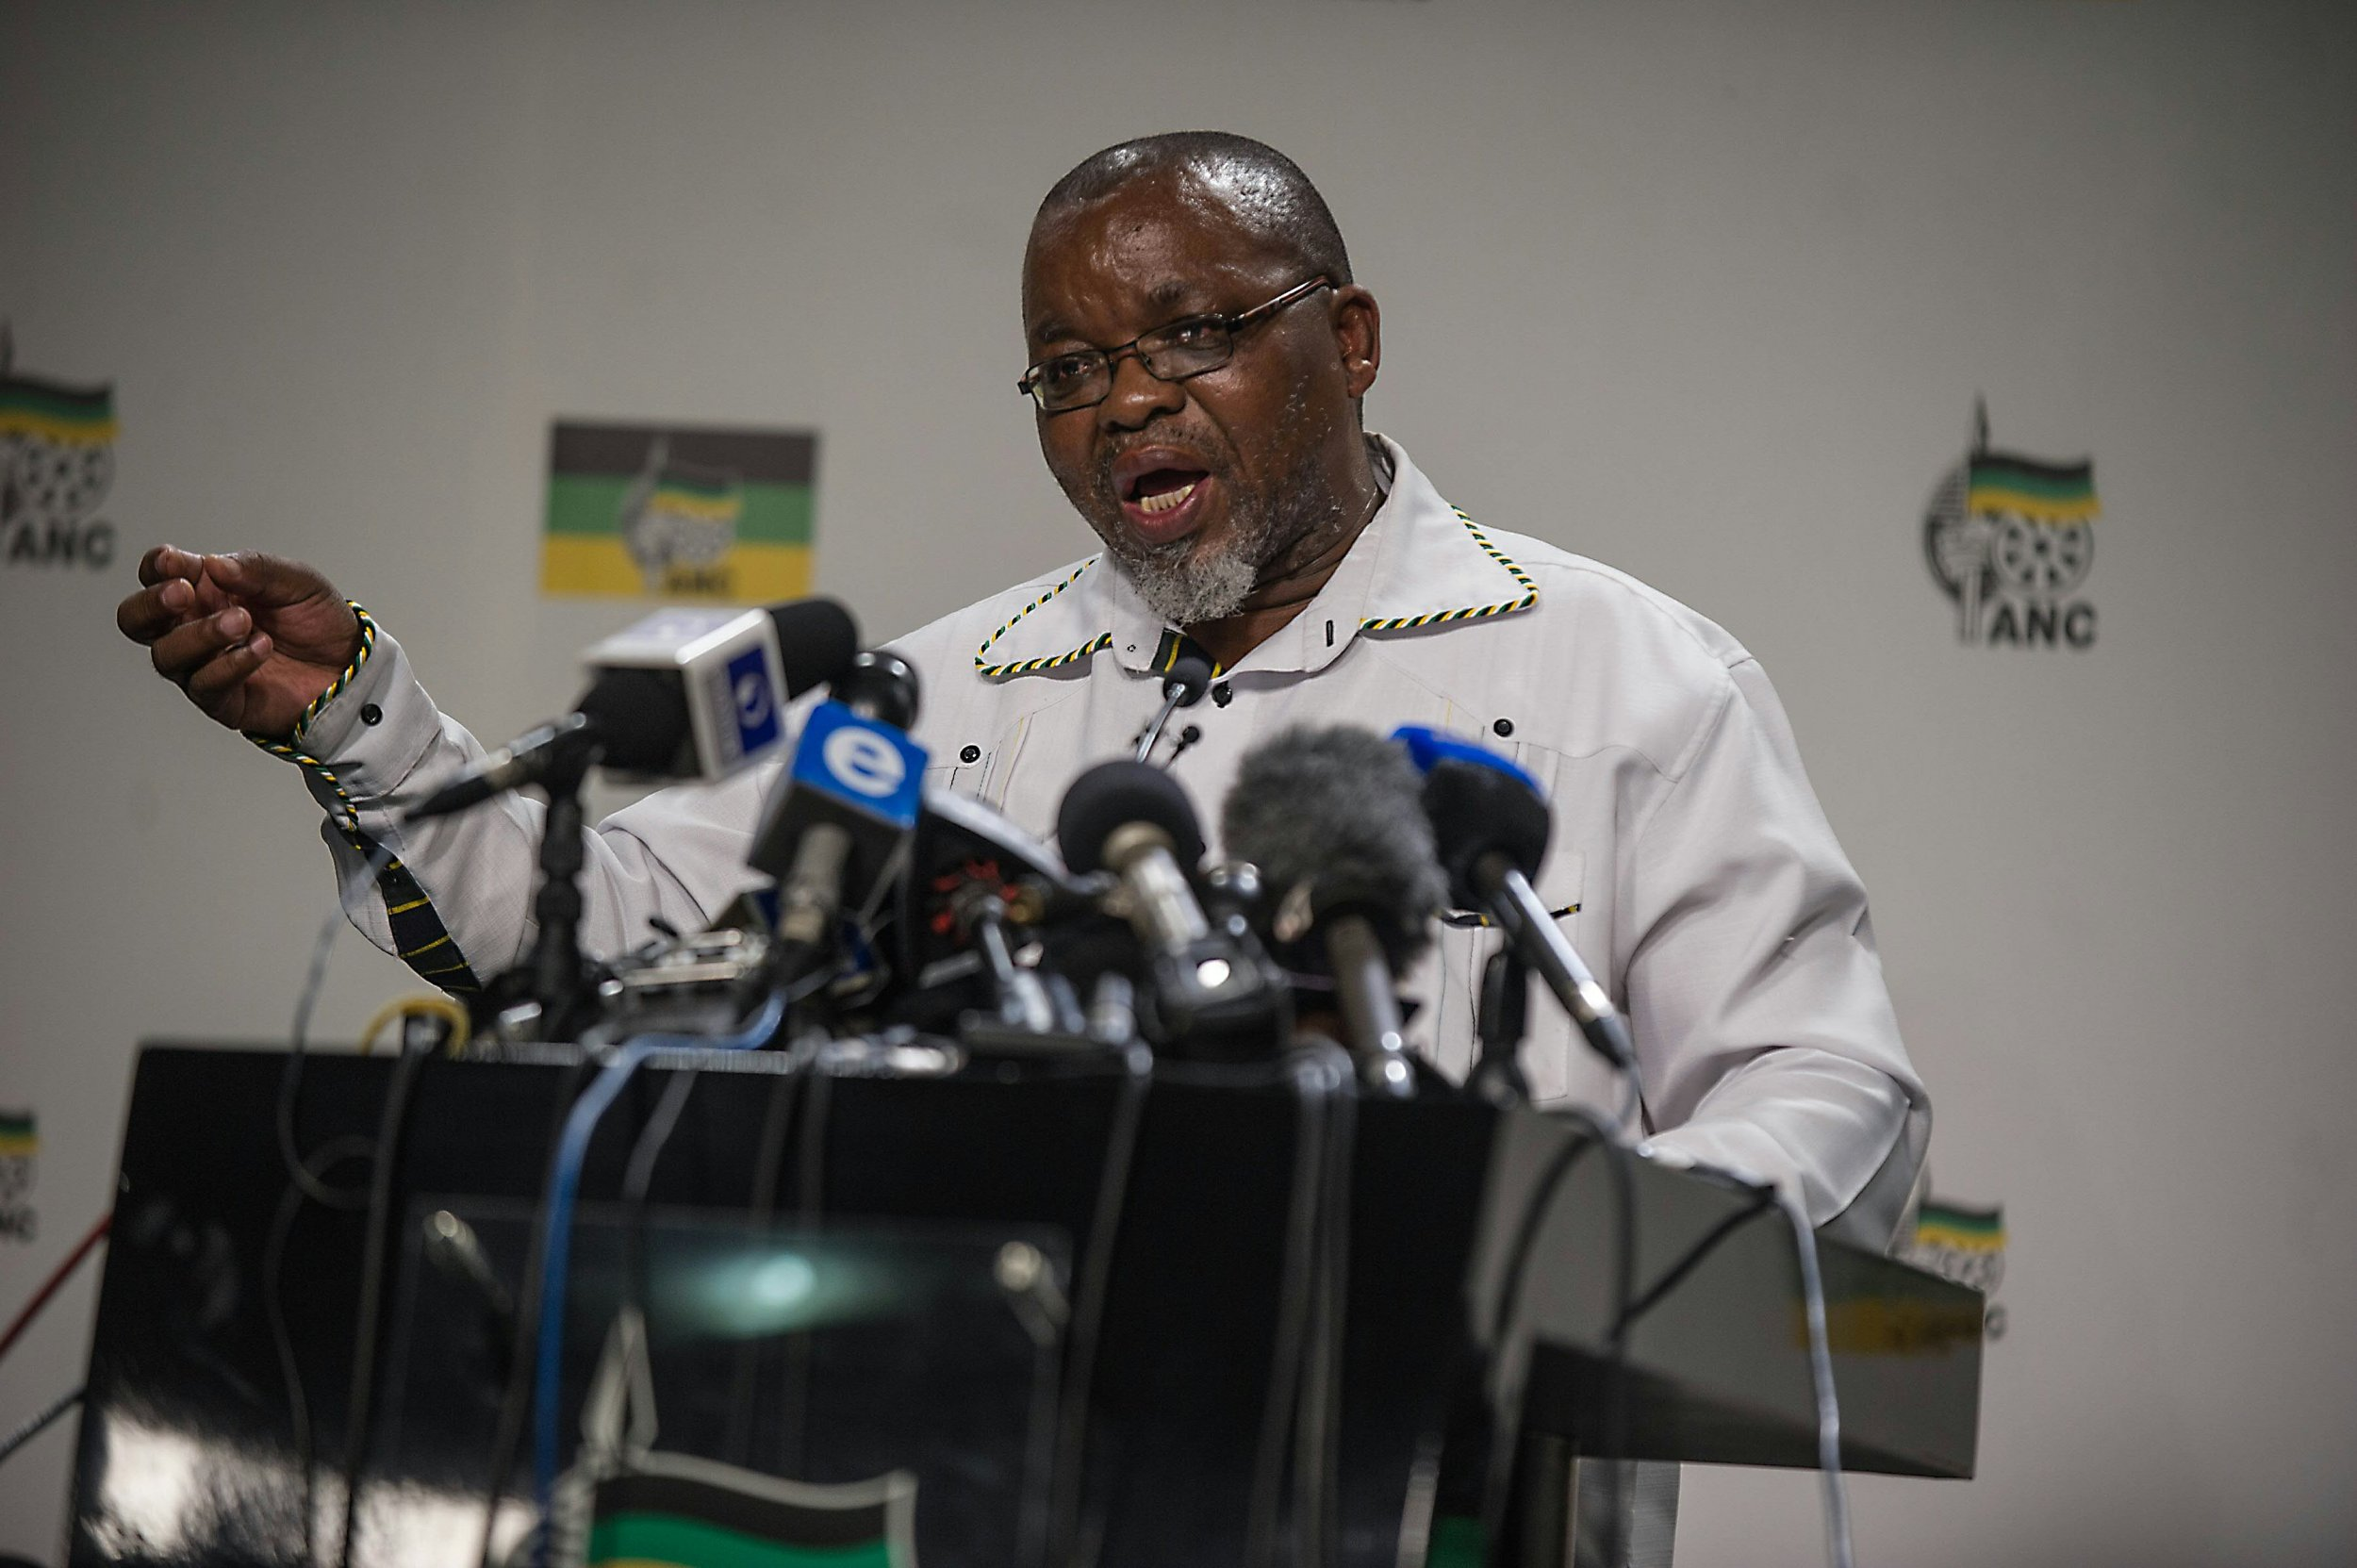 ANC secretary Gwede Mantashe addresses the media.